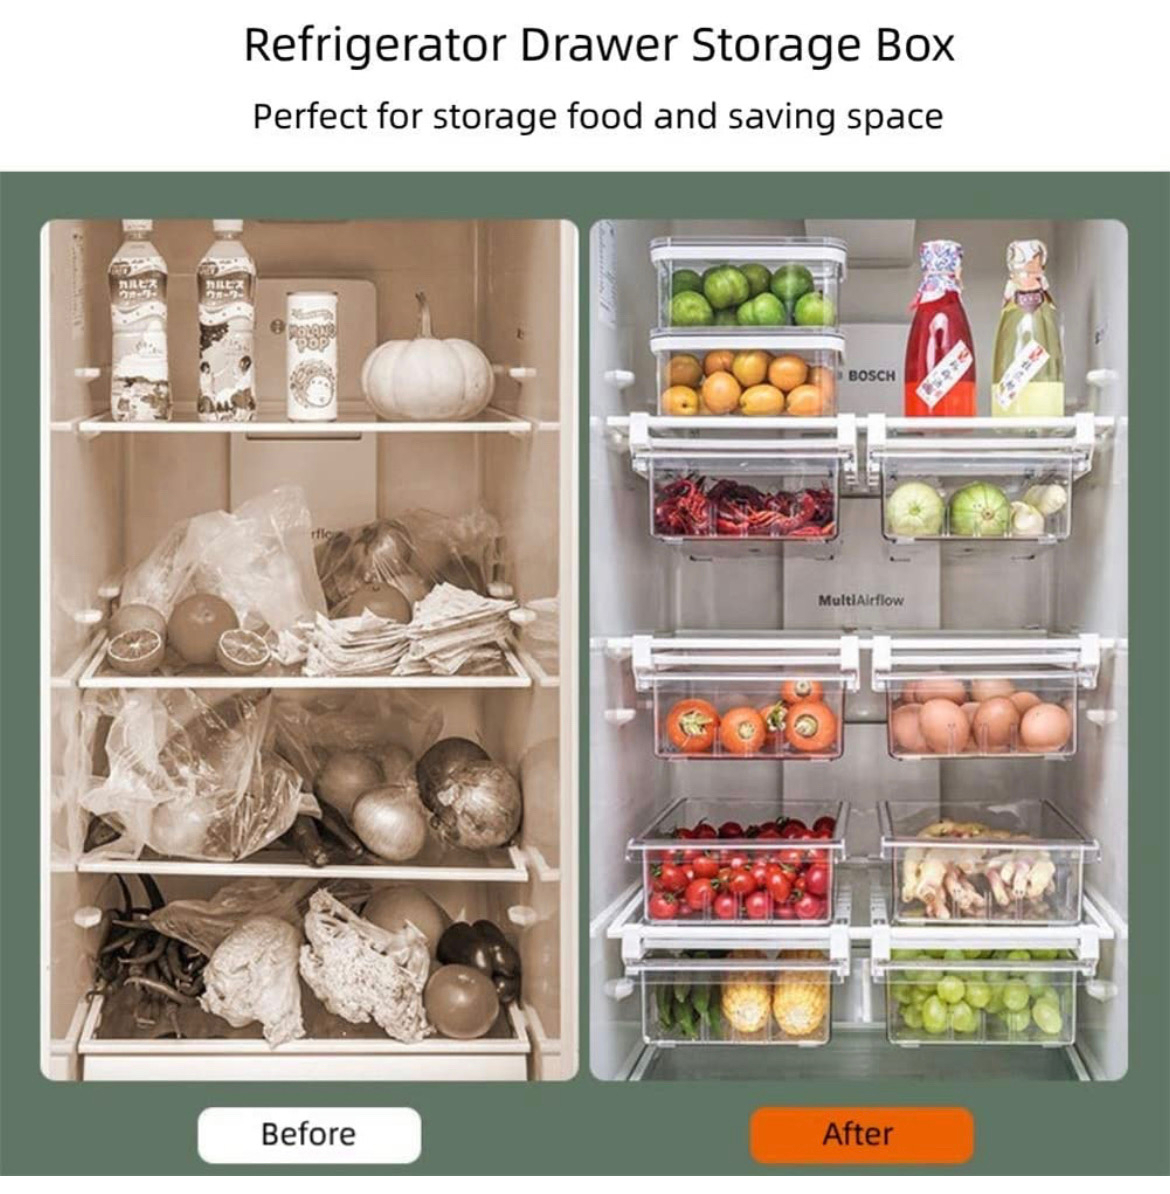 Before and after photo. Before has no colour and has a lot of food all wrapped in bags. After has fruit and healthy foods displayed in drawers.